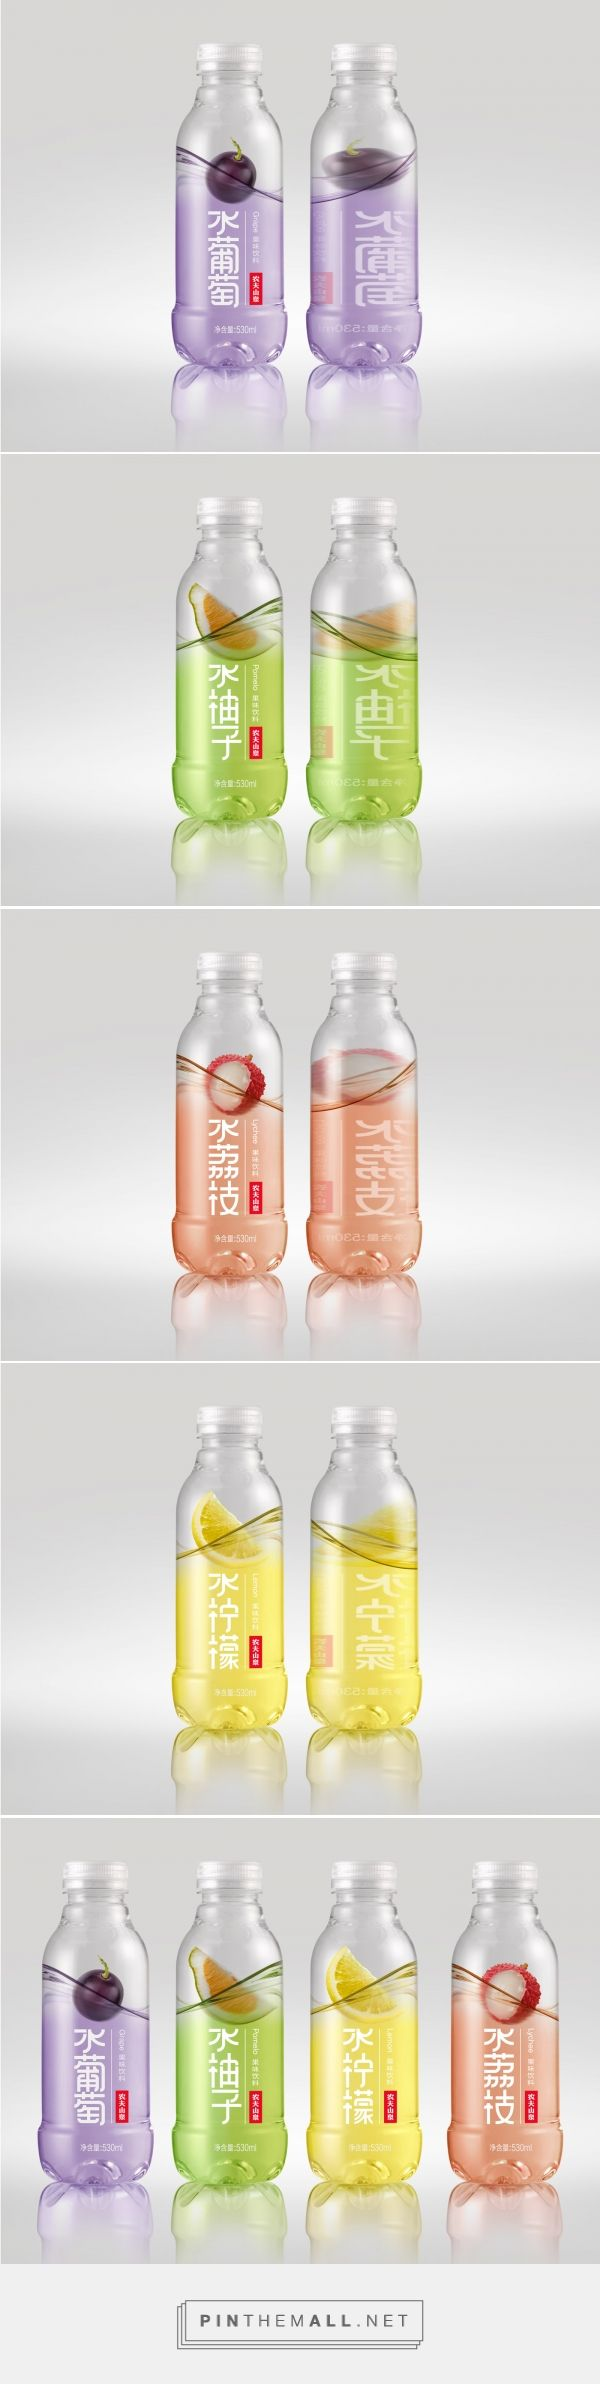 Nongfu Flavored Water by Mousegraphics | Fivestar Branding – Design and Branding Agency & Inspiration Gallery